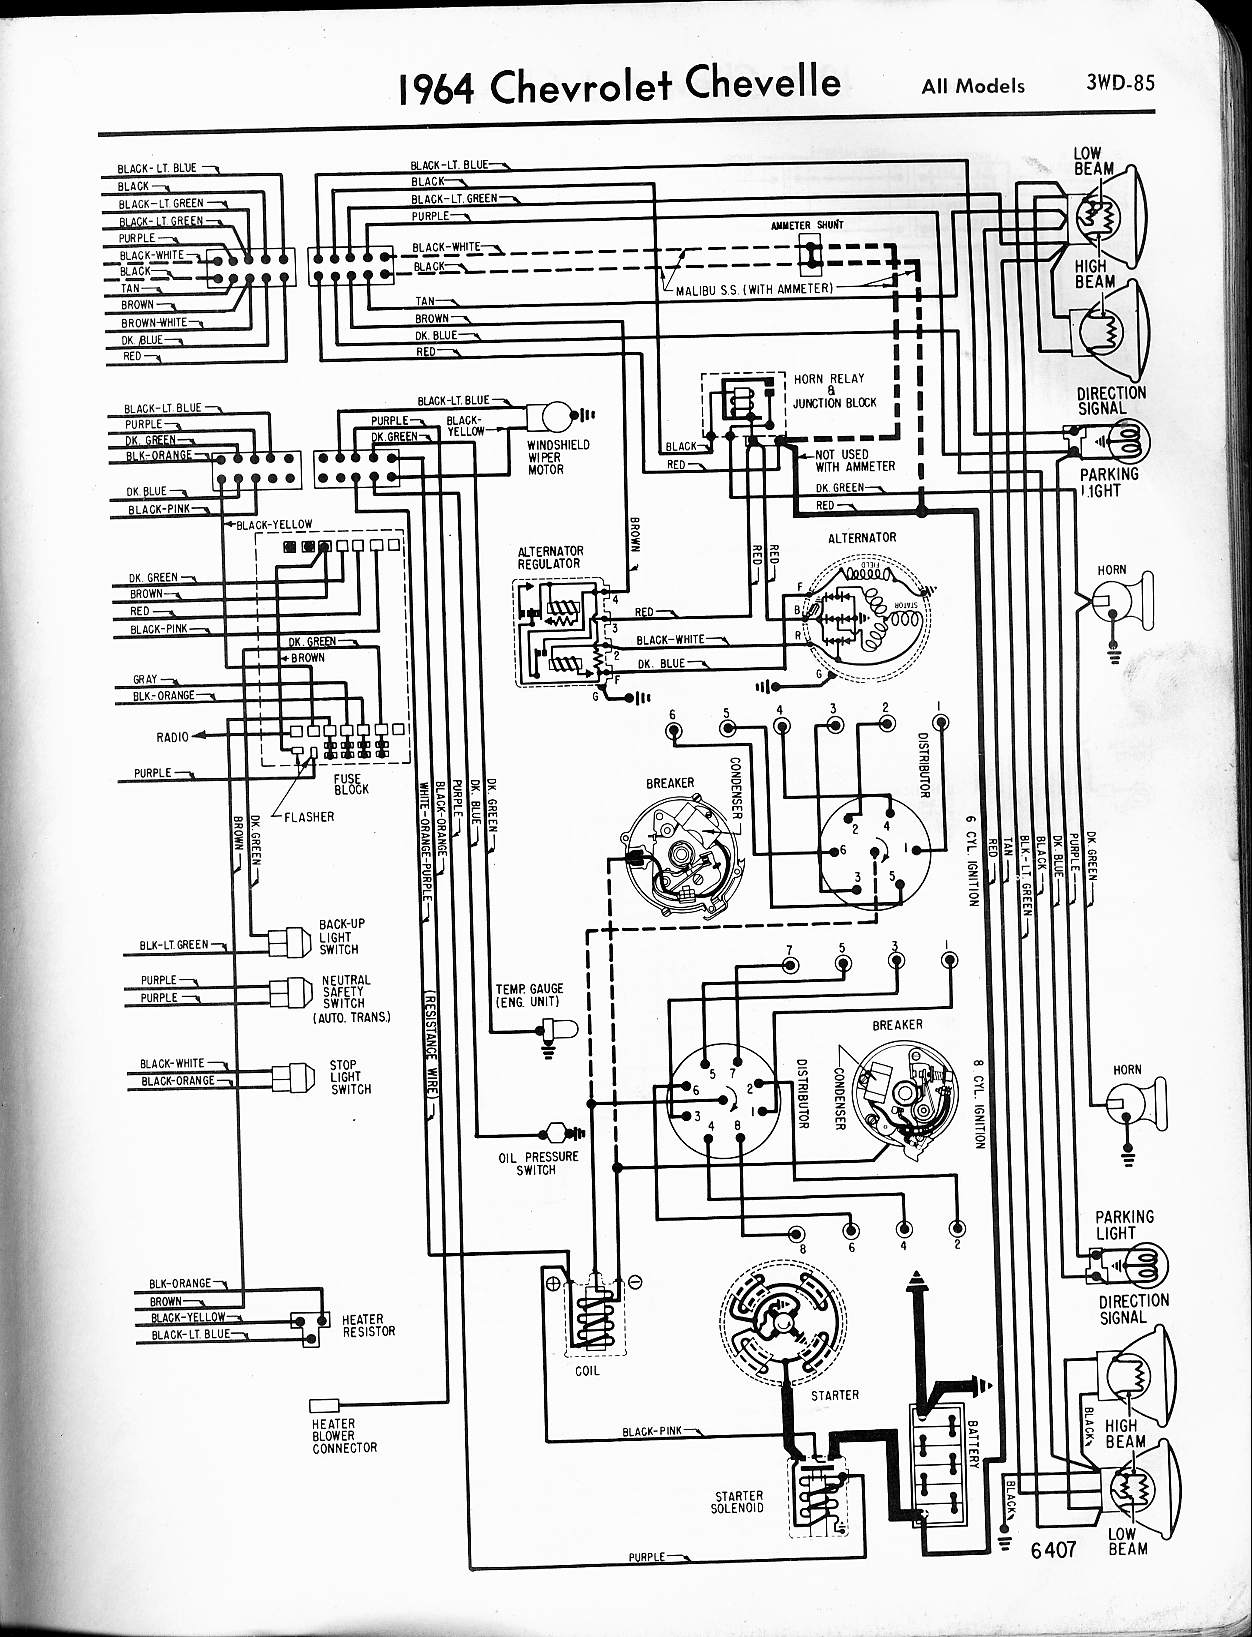 64_ChevelleA bzerob com technical articles library wiring section 64 falcon wiring diagram at bakdesigns.co